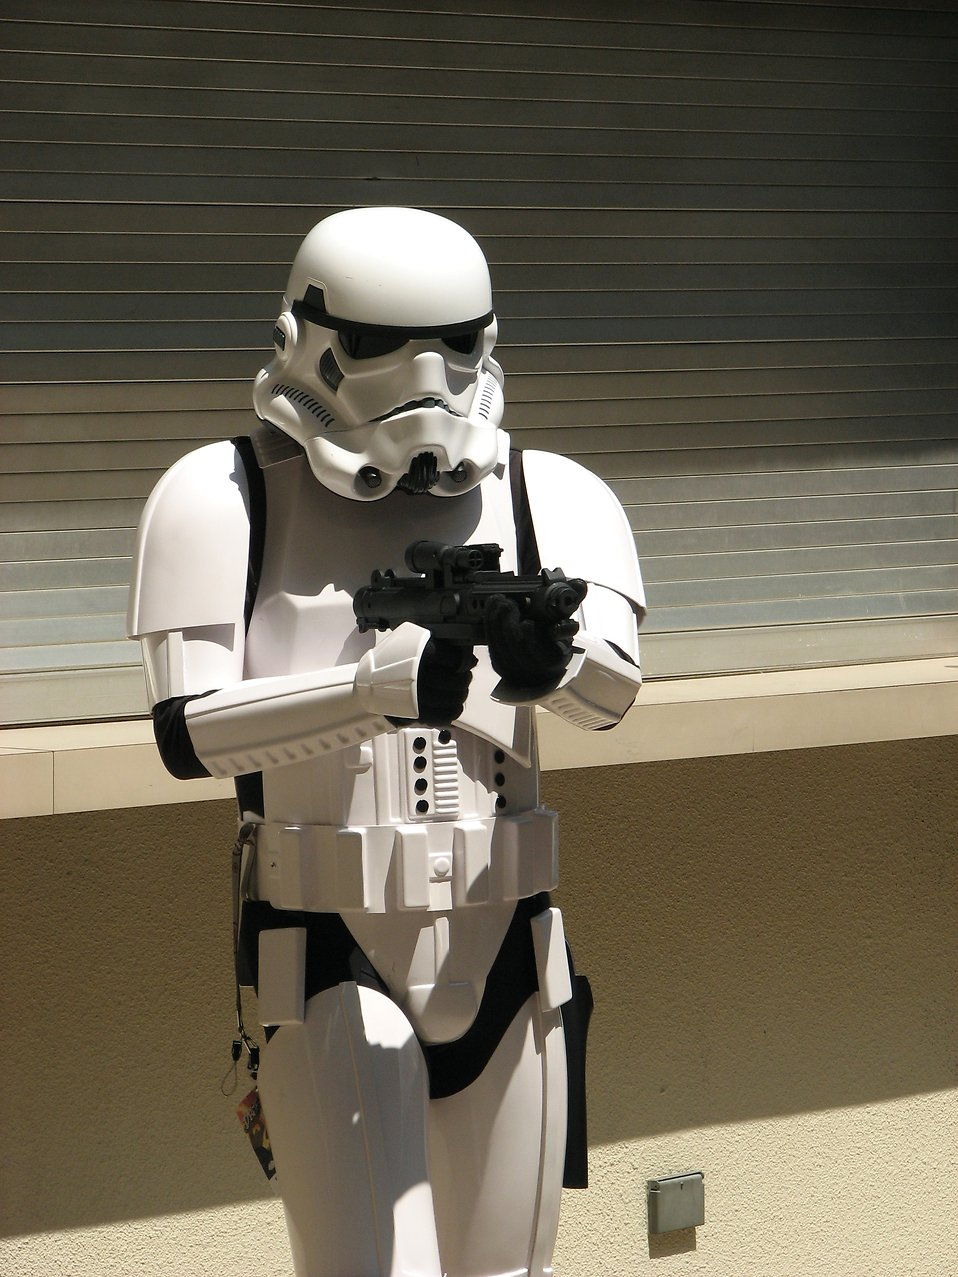 Man in stormtrooper costume at Dragoncon 2008 : Free Stock Photo